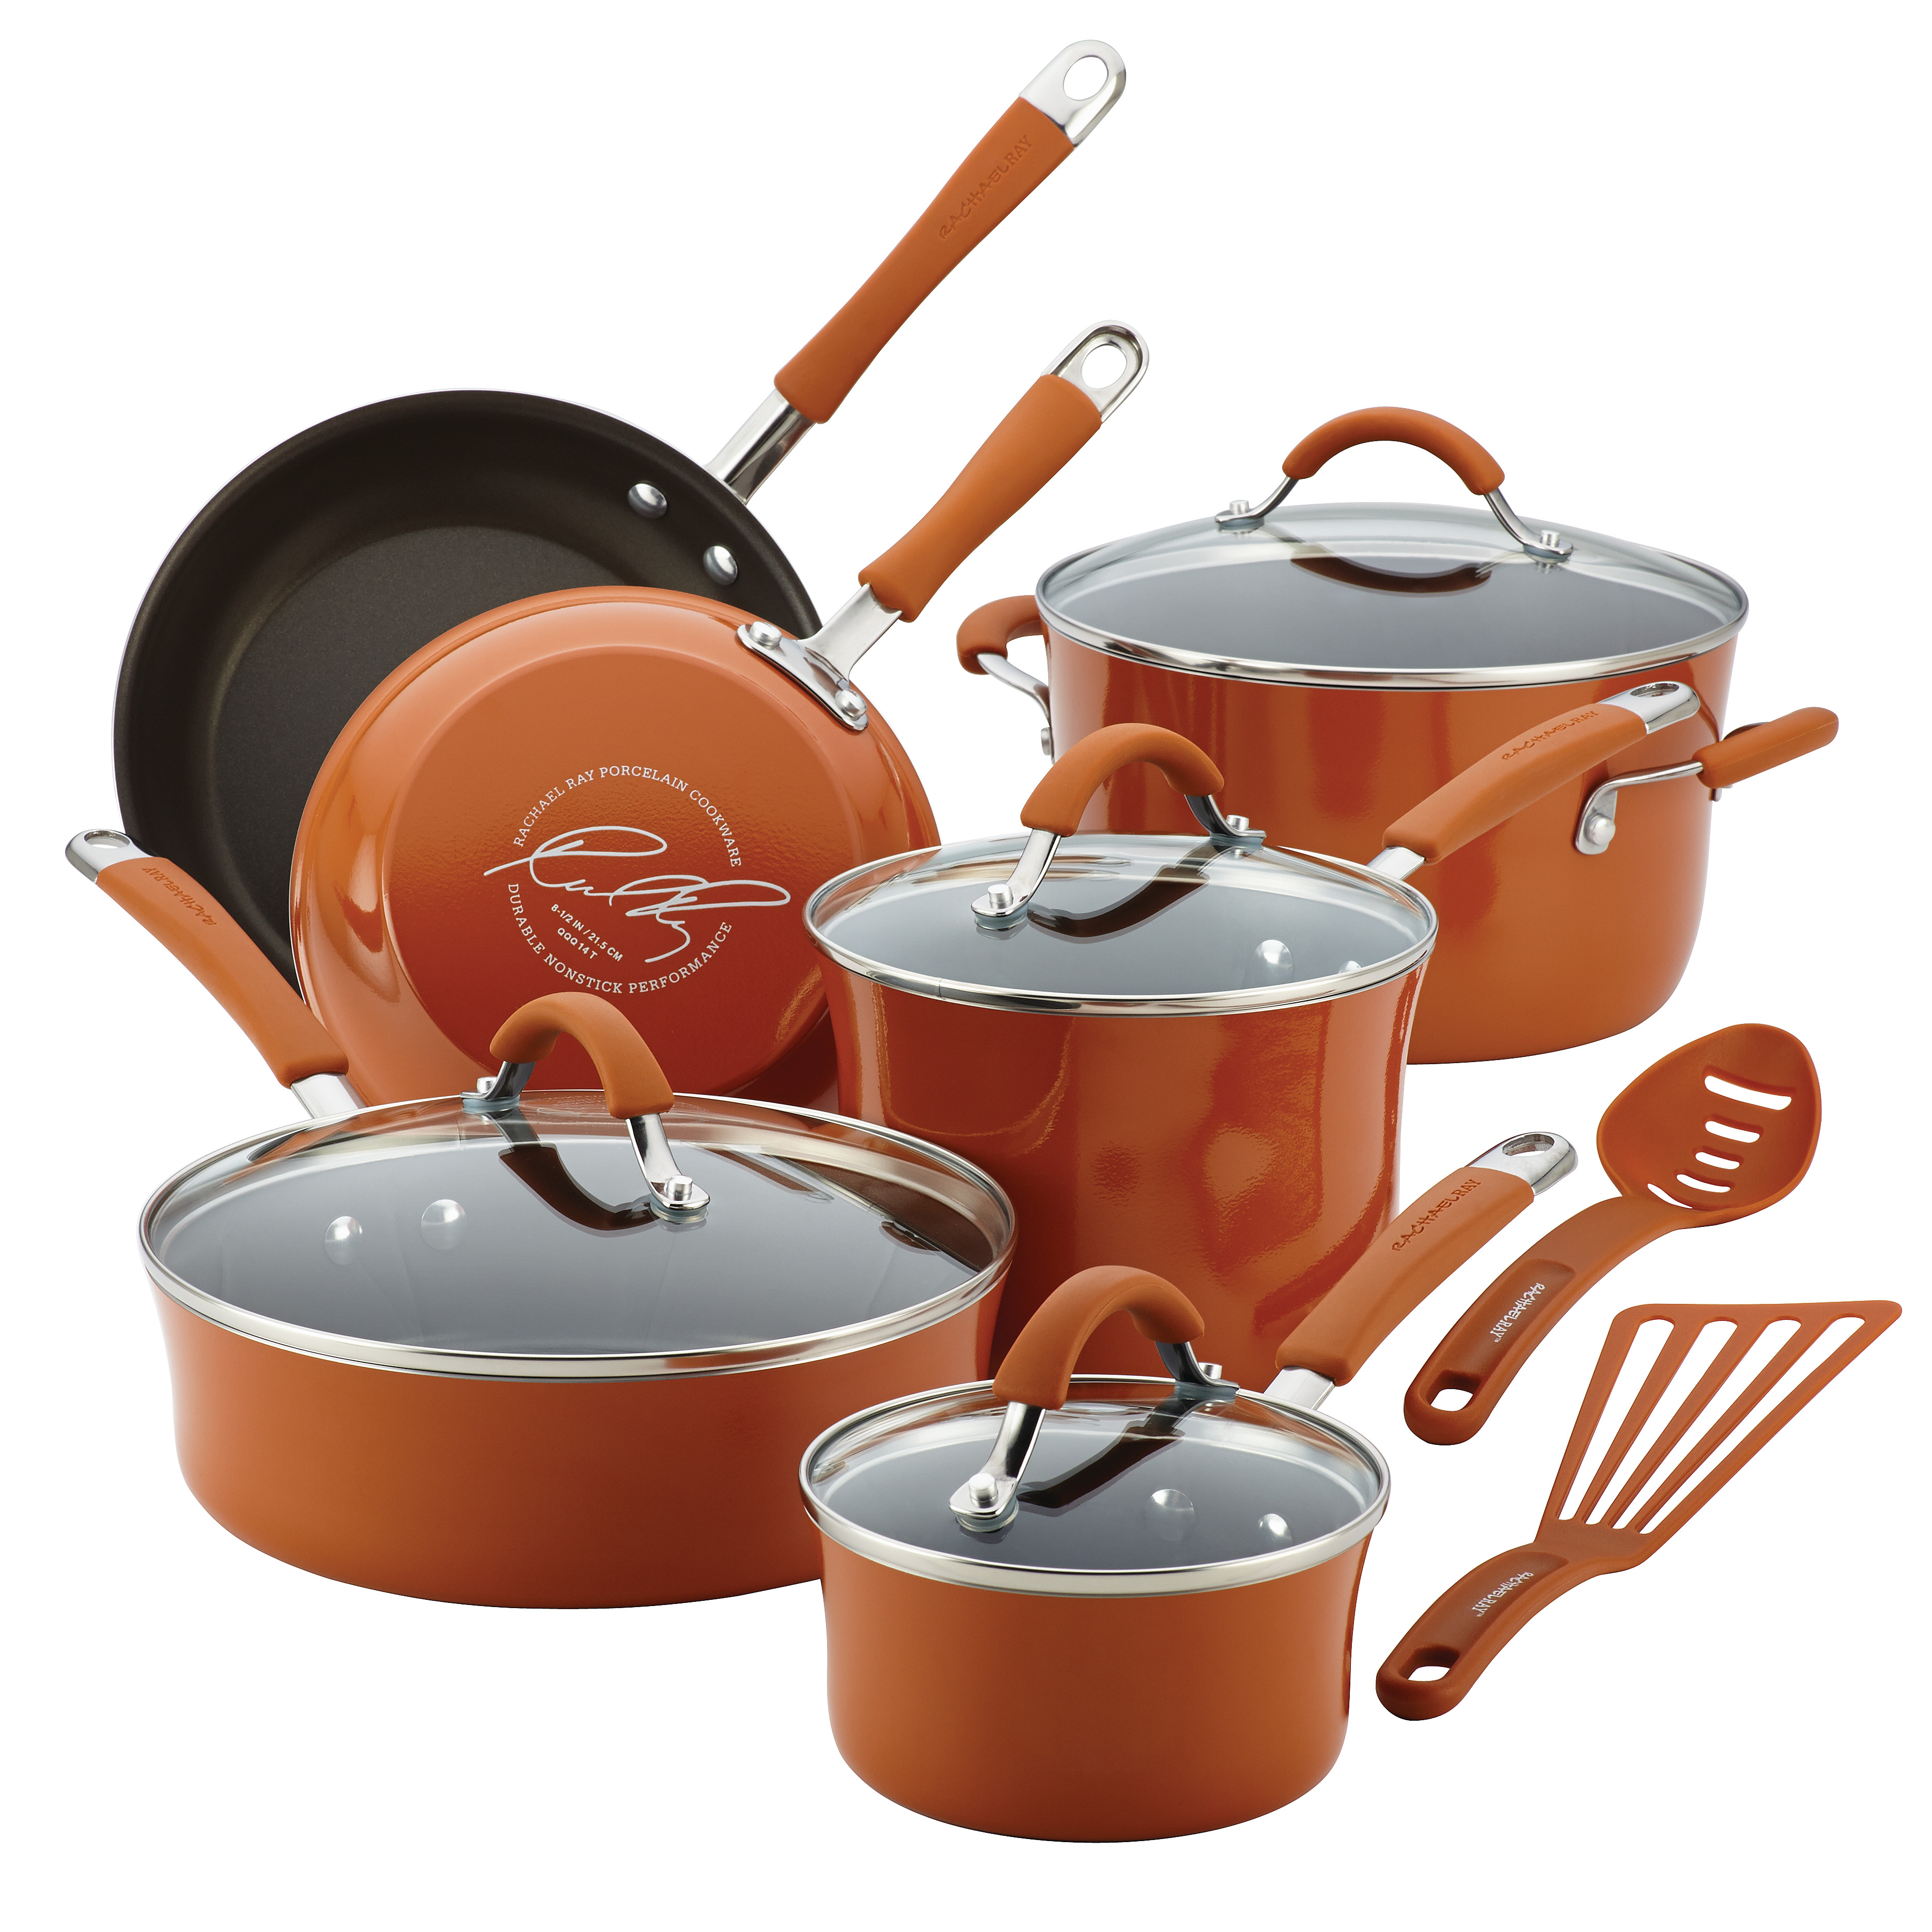 Rachael Ray(r) Cucina Hard Porcelain Enamel Nonstick Cookware Set, 12-Piece, Pumpkin Orange